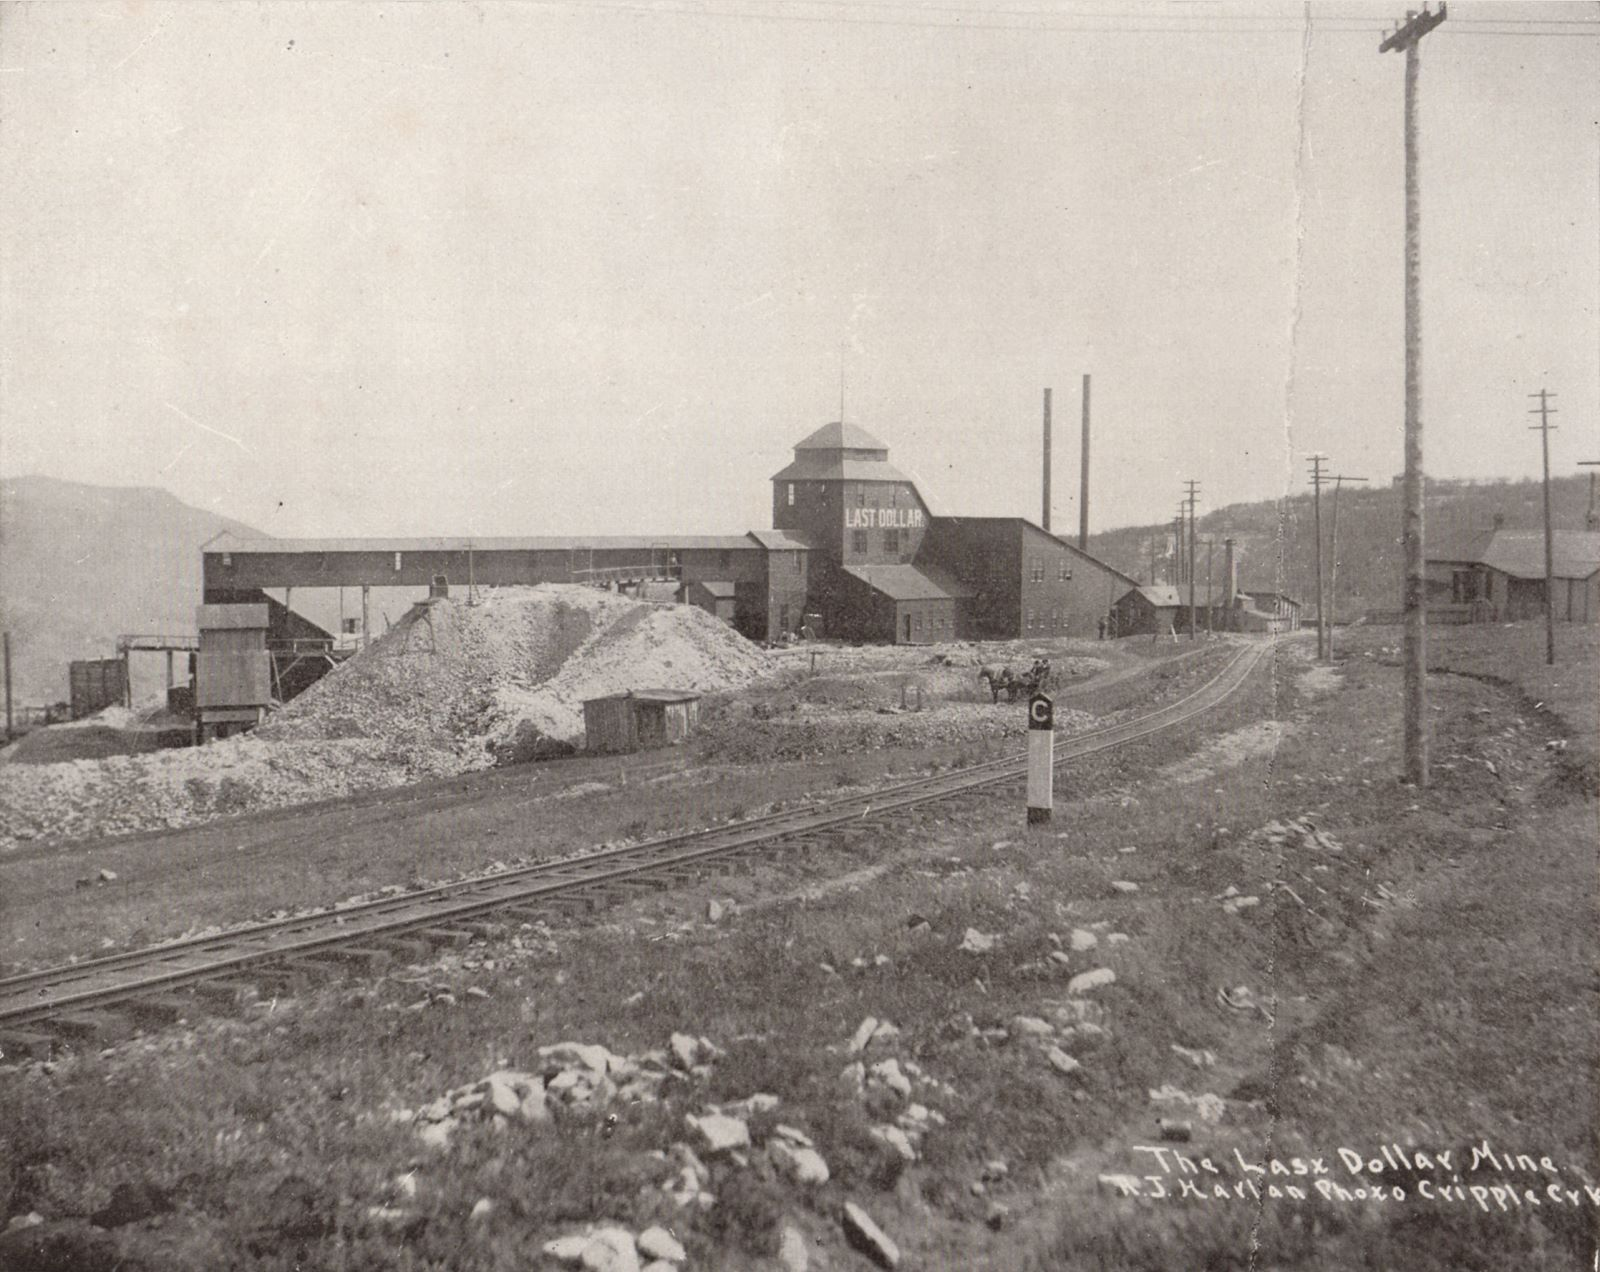 This view of the Last Dollar Mine is photographed same day and time as a more common seen view from nearly same location, where the photographer Harlan as moved closer to the Golden Circle trackage seen near lower left corner, to avoid that telegraph pole in the foreground near right-hand side. In both views, there is a man dumping an ore-car about 1/4 in from left-hand side on this view, in front of the covered gangway from mine to the ore-house seen near left-hand side. The ore-house was connected to another Golden Circle spur, which also went on to other mines around the town of Independence, while the track in the foreground is the mainline going towards Victor mine high up on Bull Cliffs/Hills.